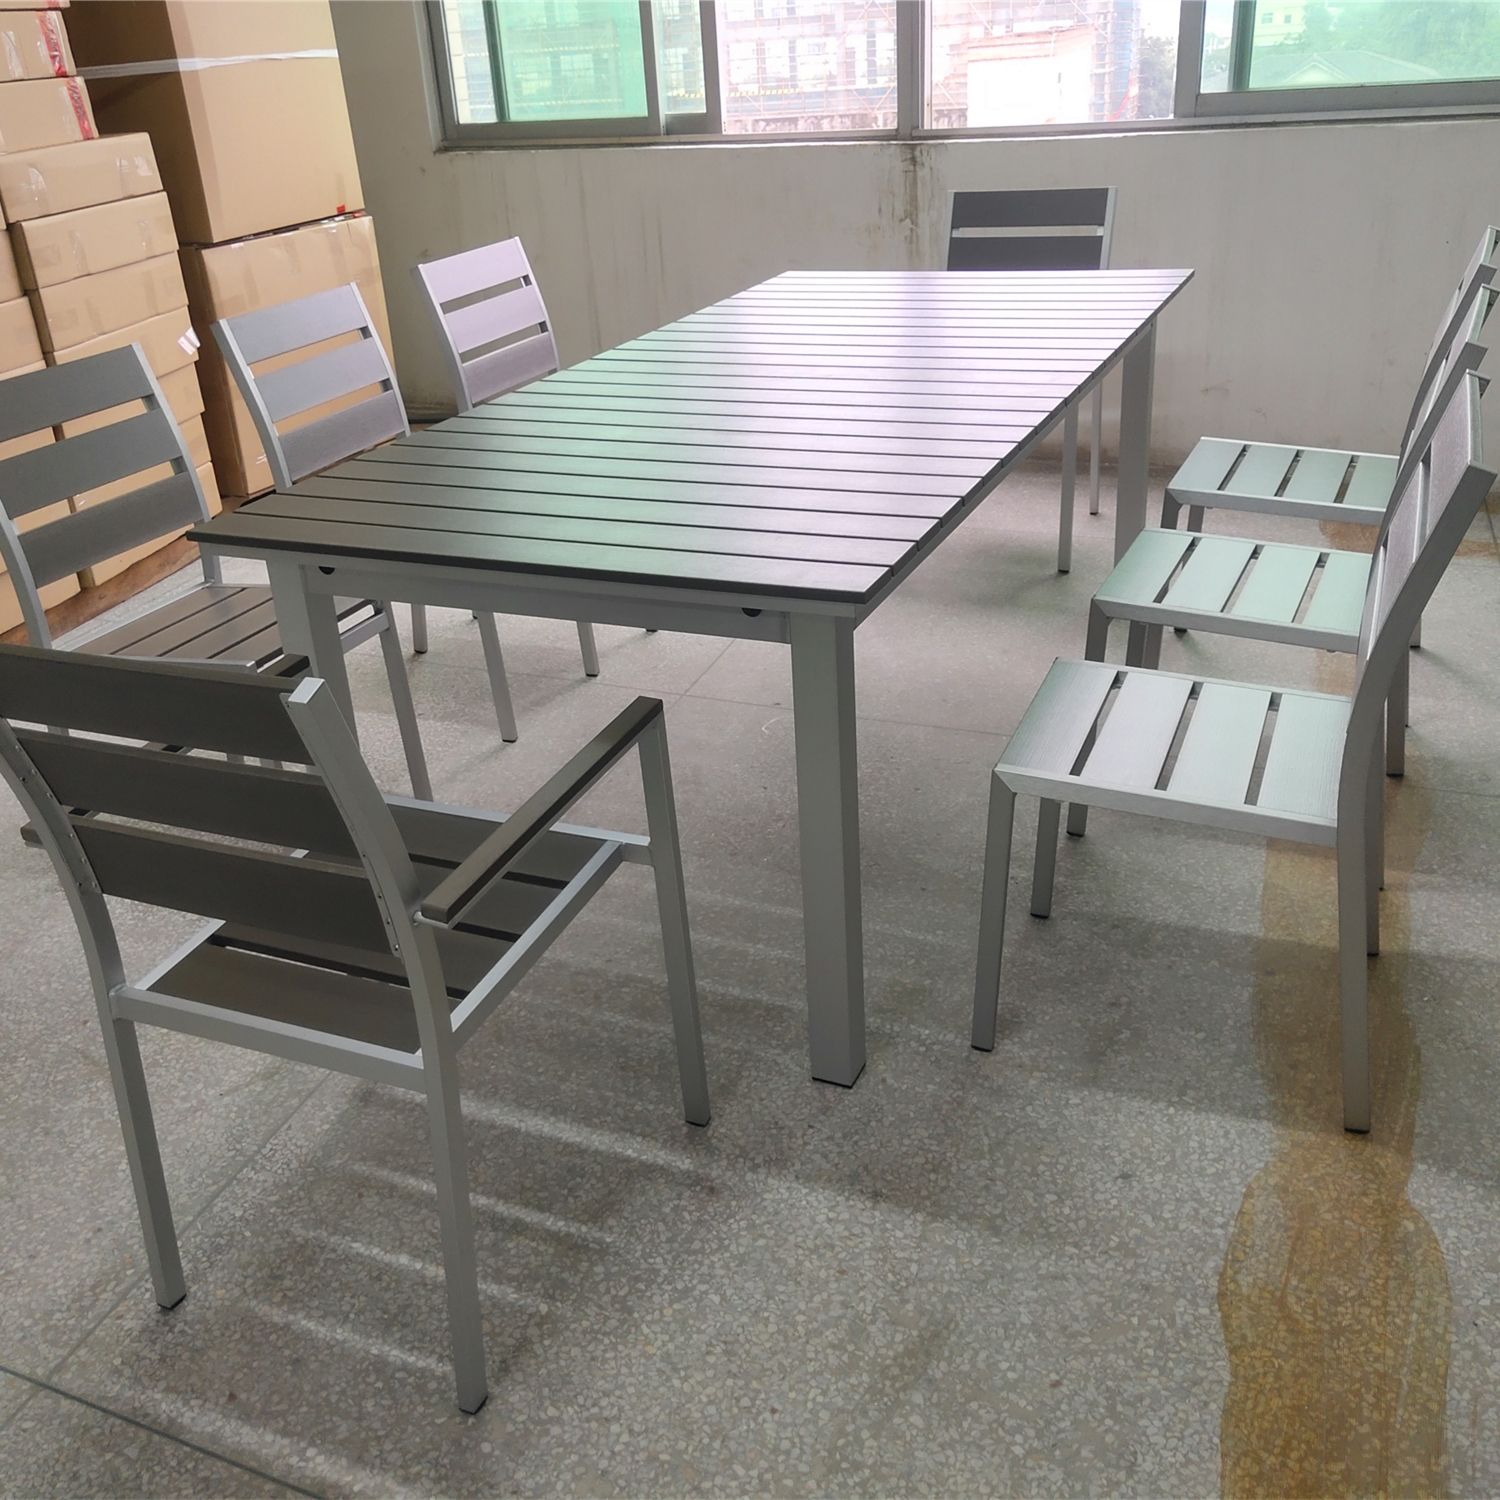 China import high end customized made rattan furniture outdoor folding table and chairs patio garden hotel project furniture